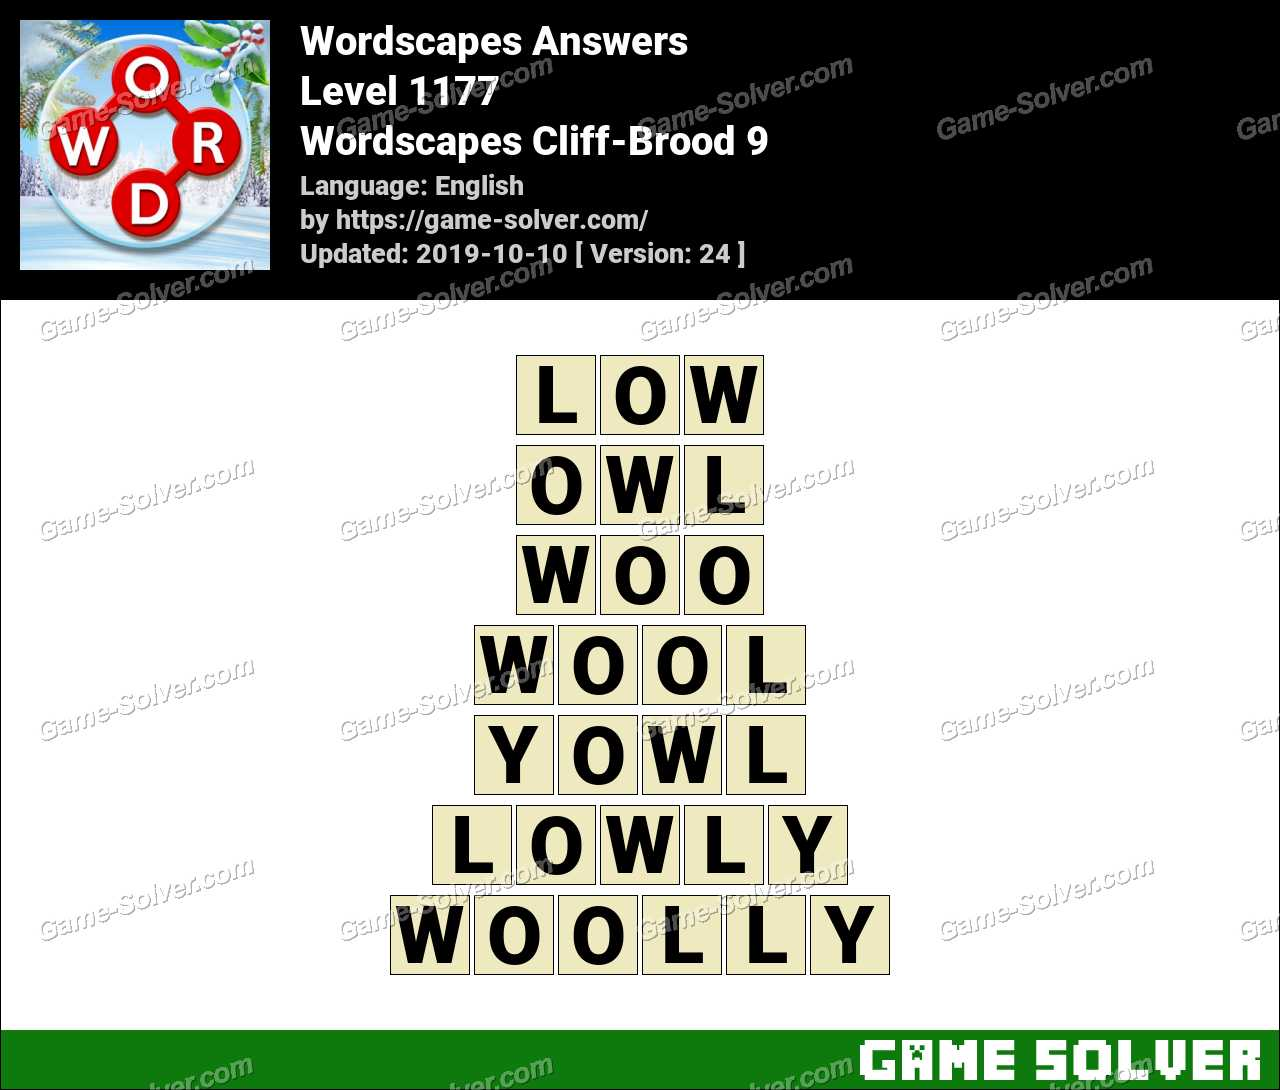 Wordscapes Cliff-Brood 9 Answers